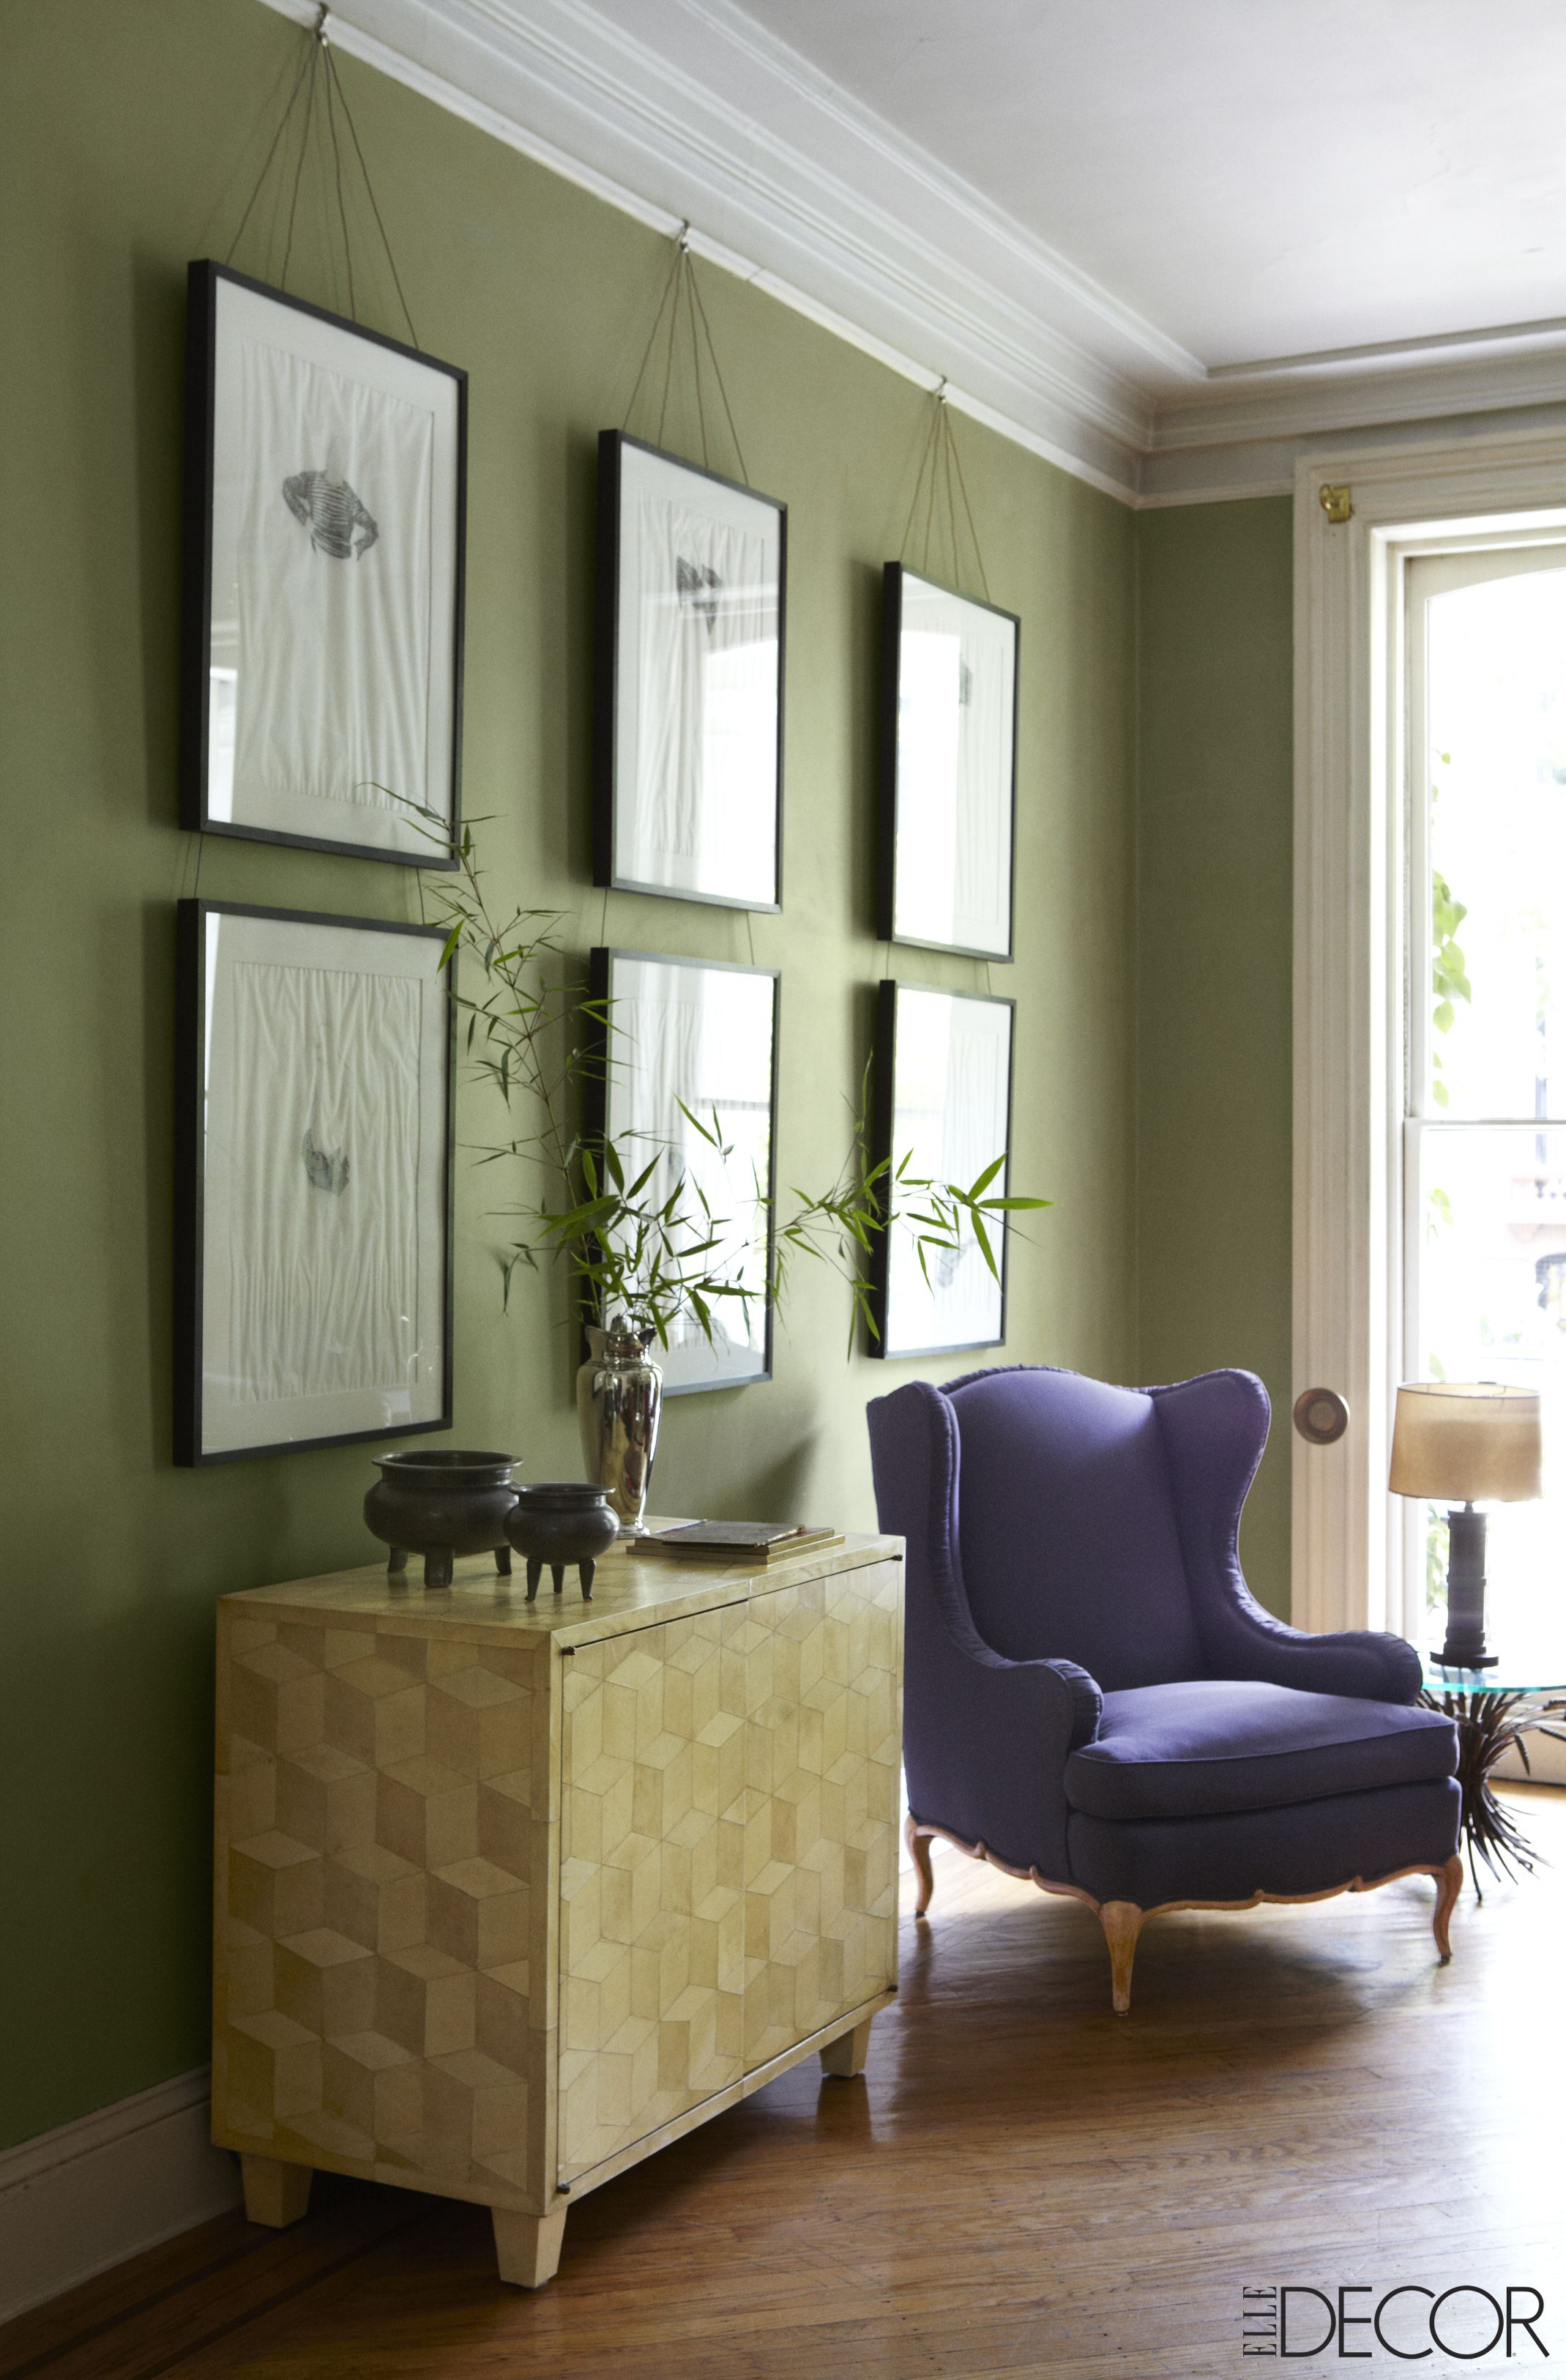 Uncategorized Paint Colors That Go With Green olive green paint color decor ideas walls furniture decorations